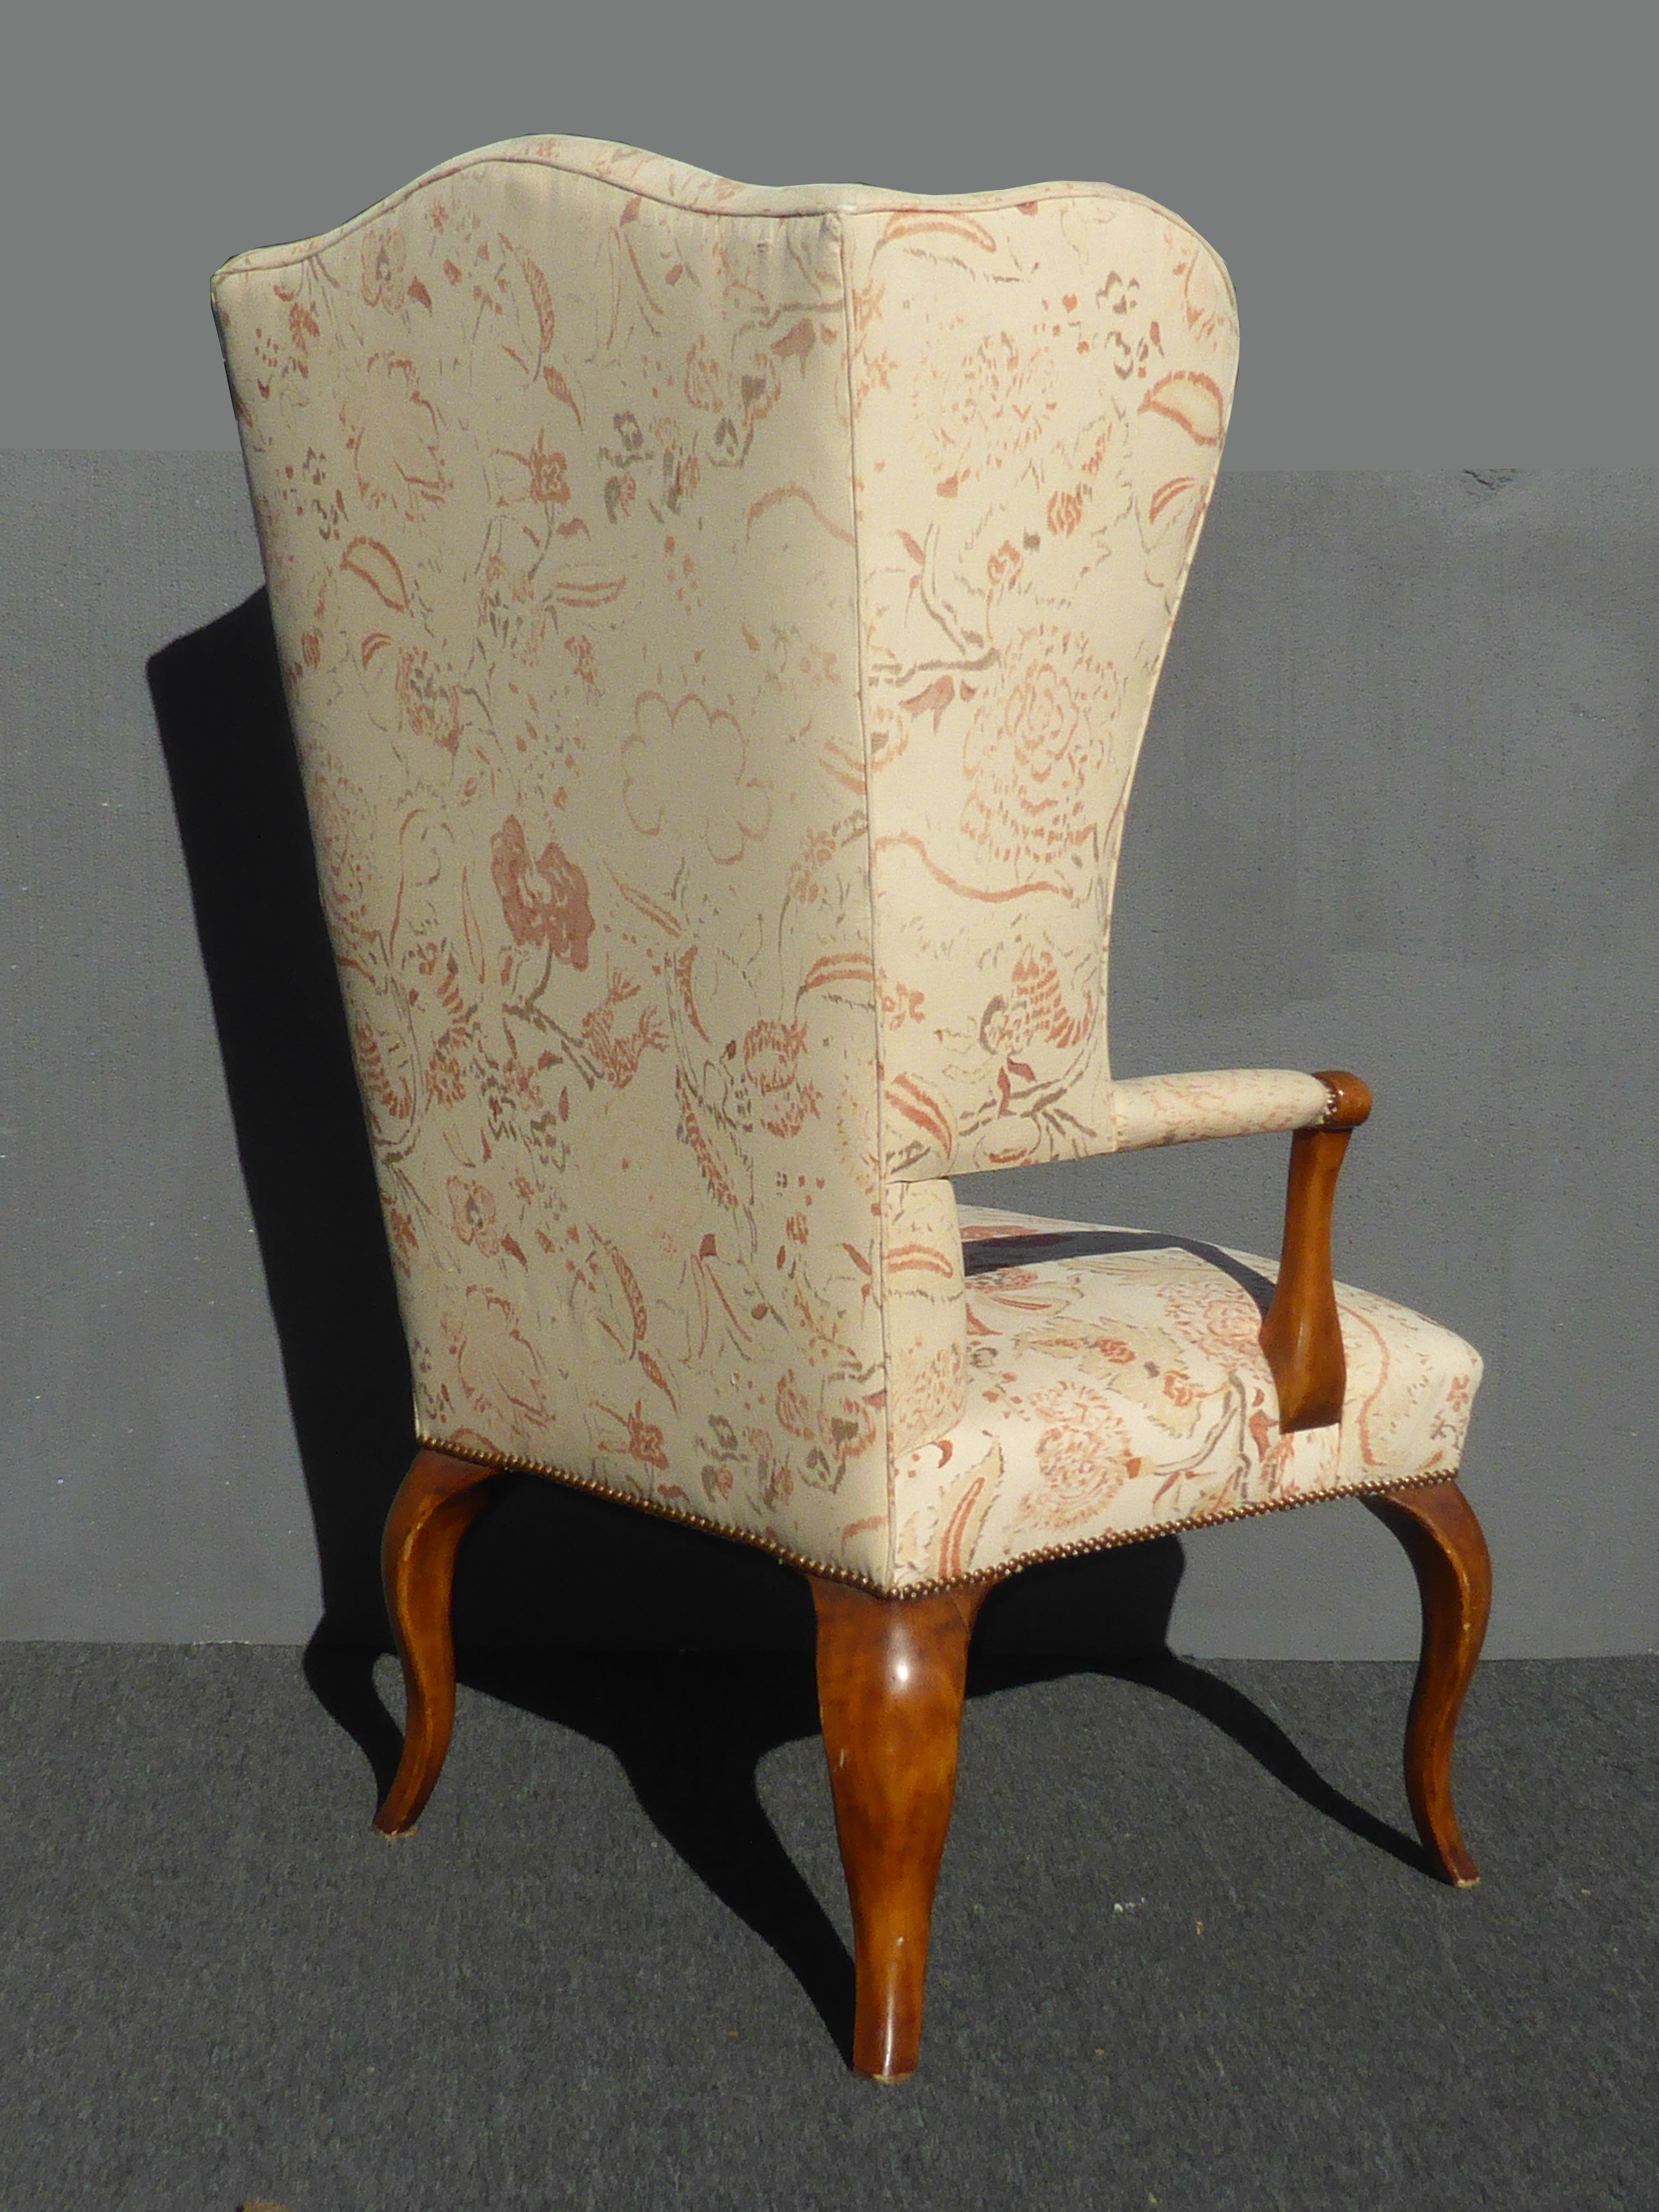 Superb Unique Vintage French Country Floral Throne Wingback Accent Chair   Image 4  Of 12